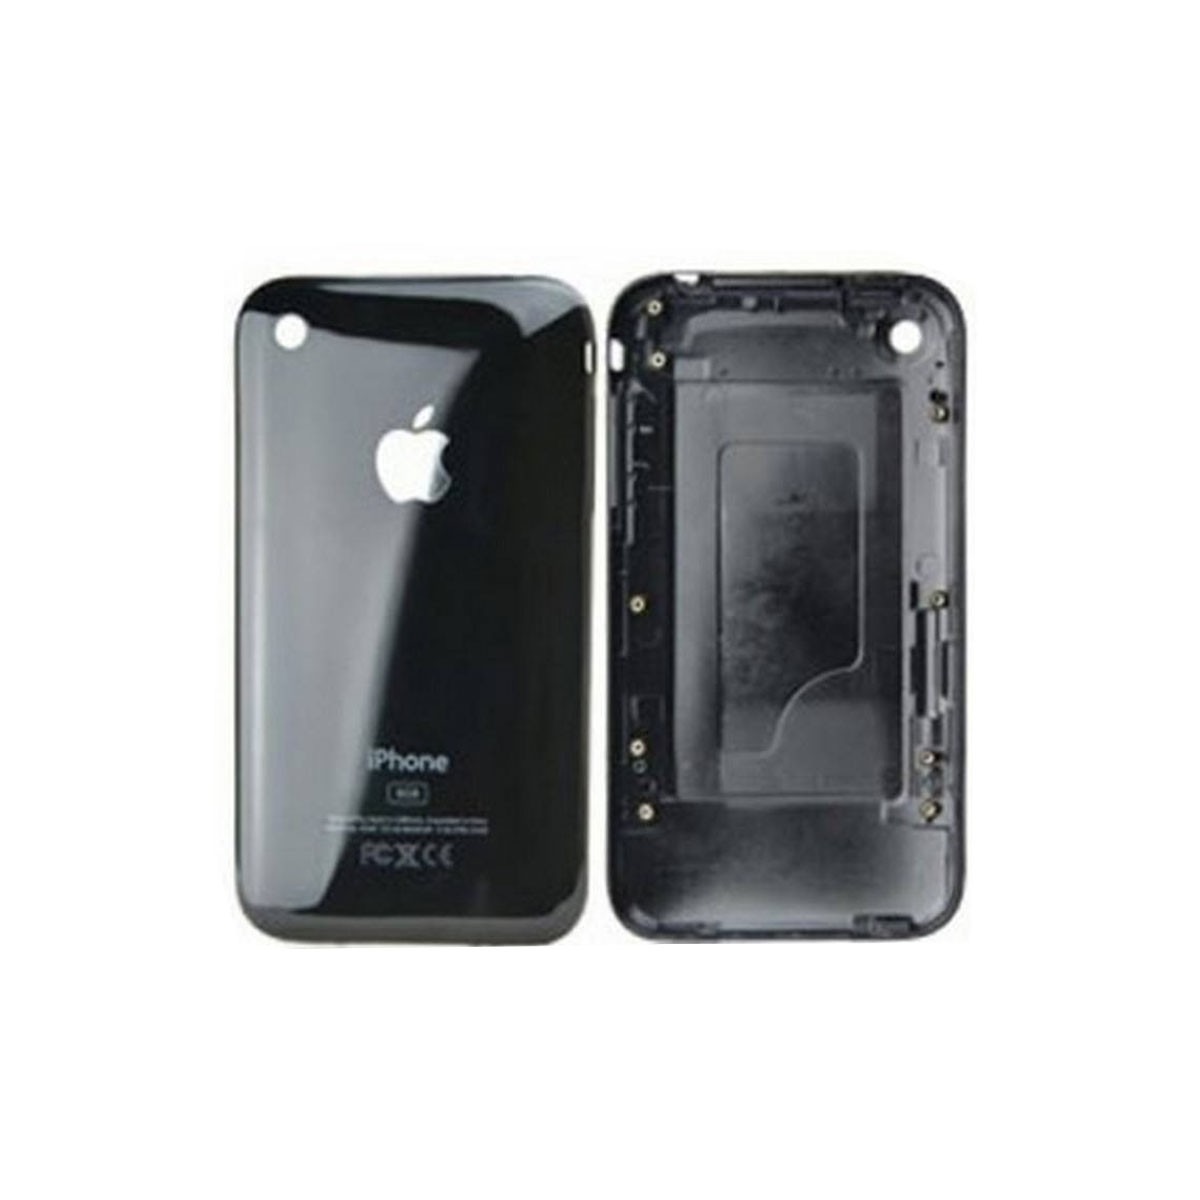 carcasa iphone 3G Negra 16GB